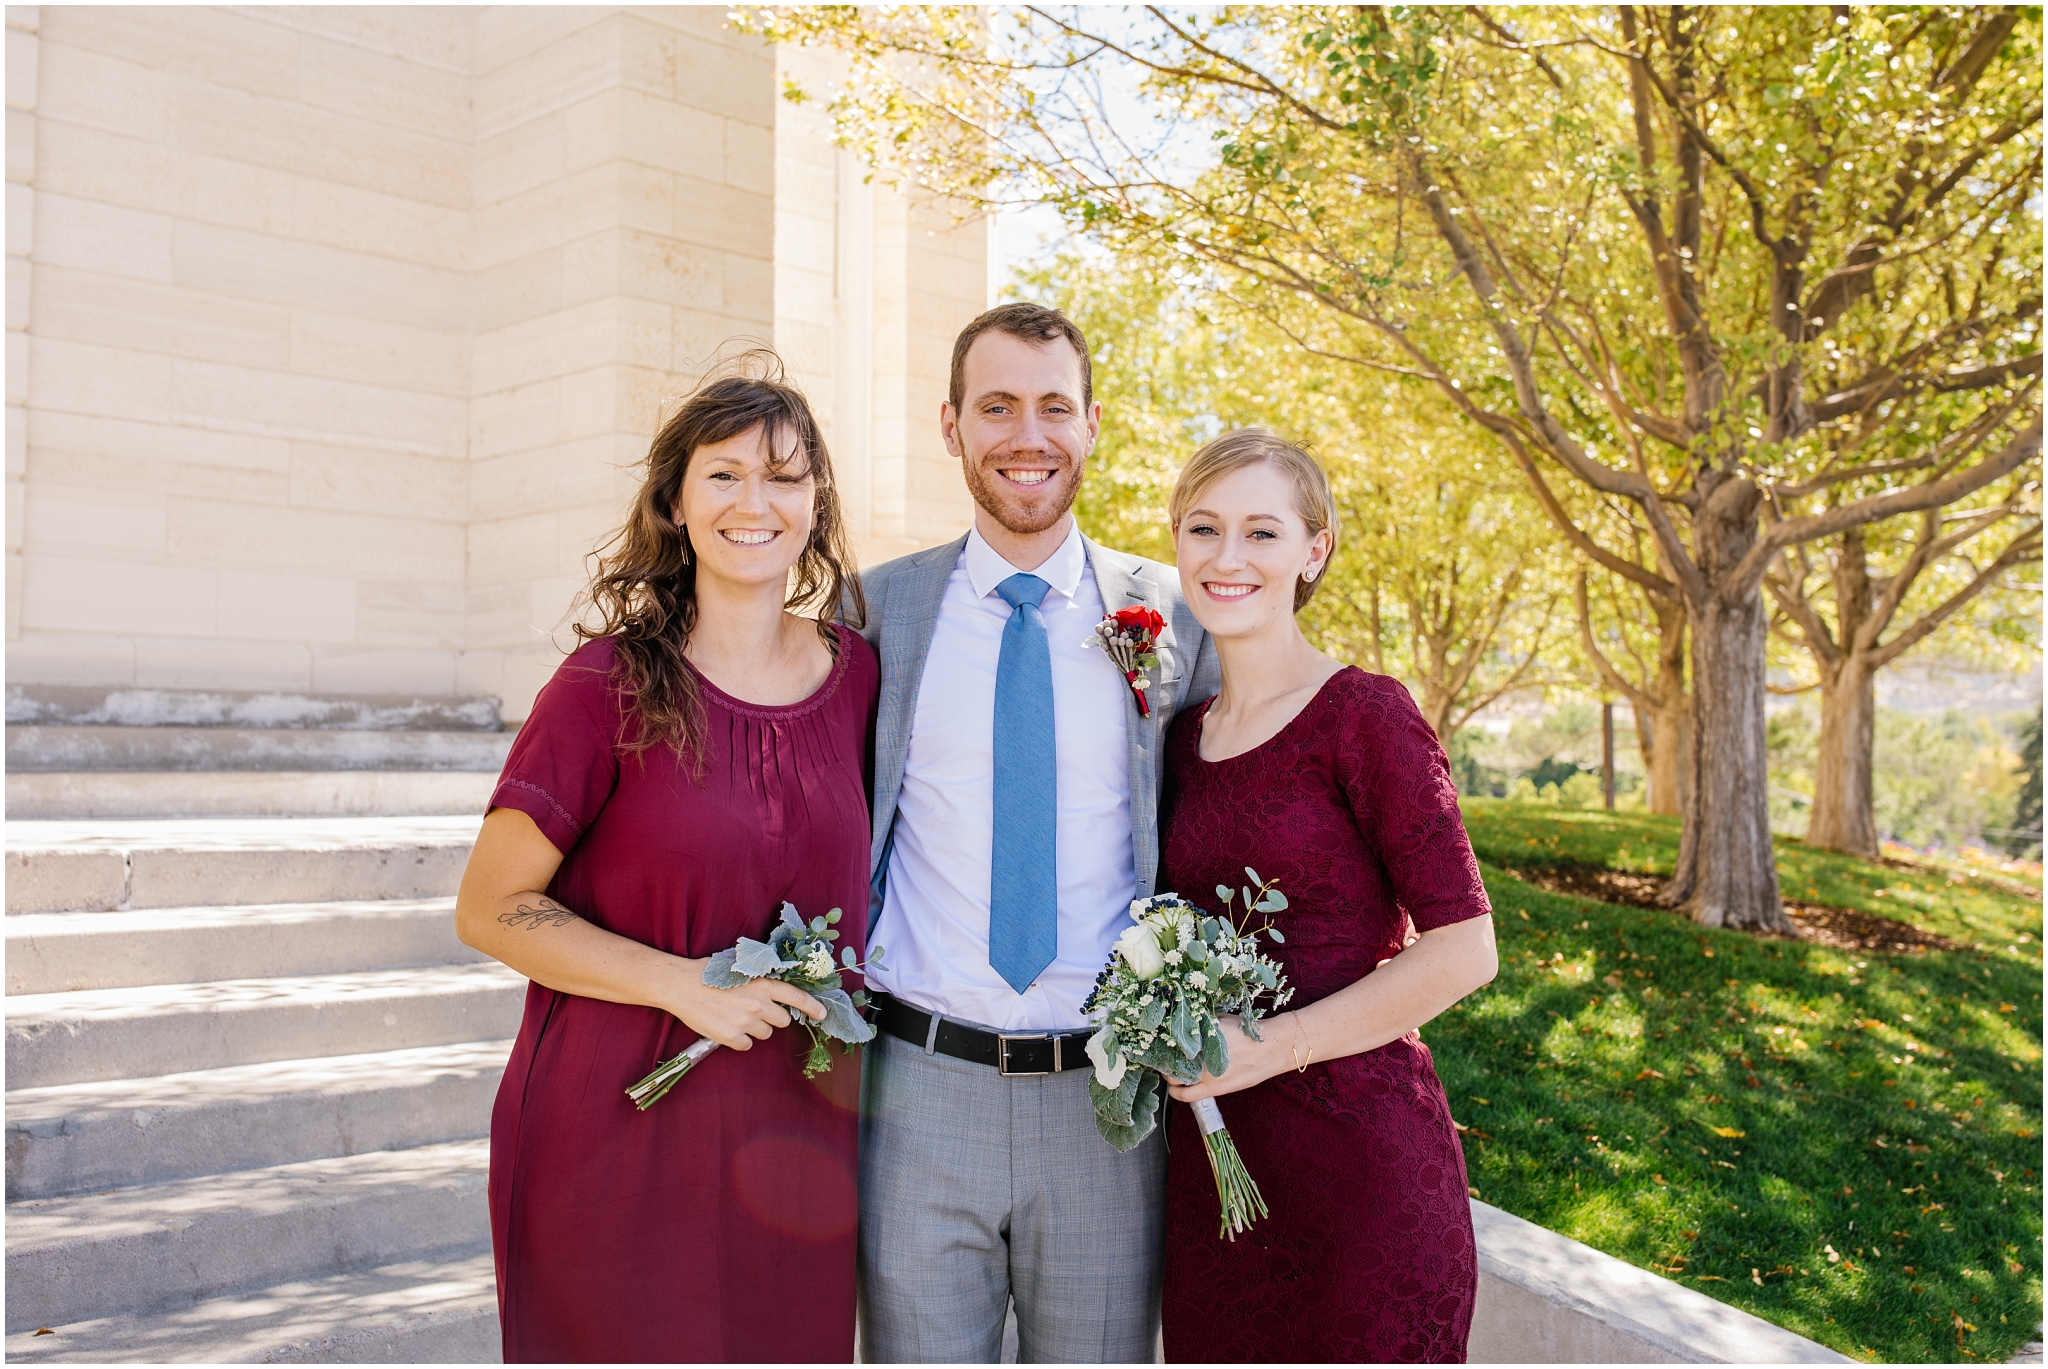 BrynneWinston-73_Lizzie-B-Imagery-Utah-Wedding-Photographer-Utah-County-Manti-Temple.jpg